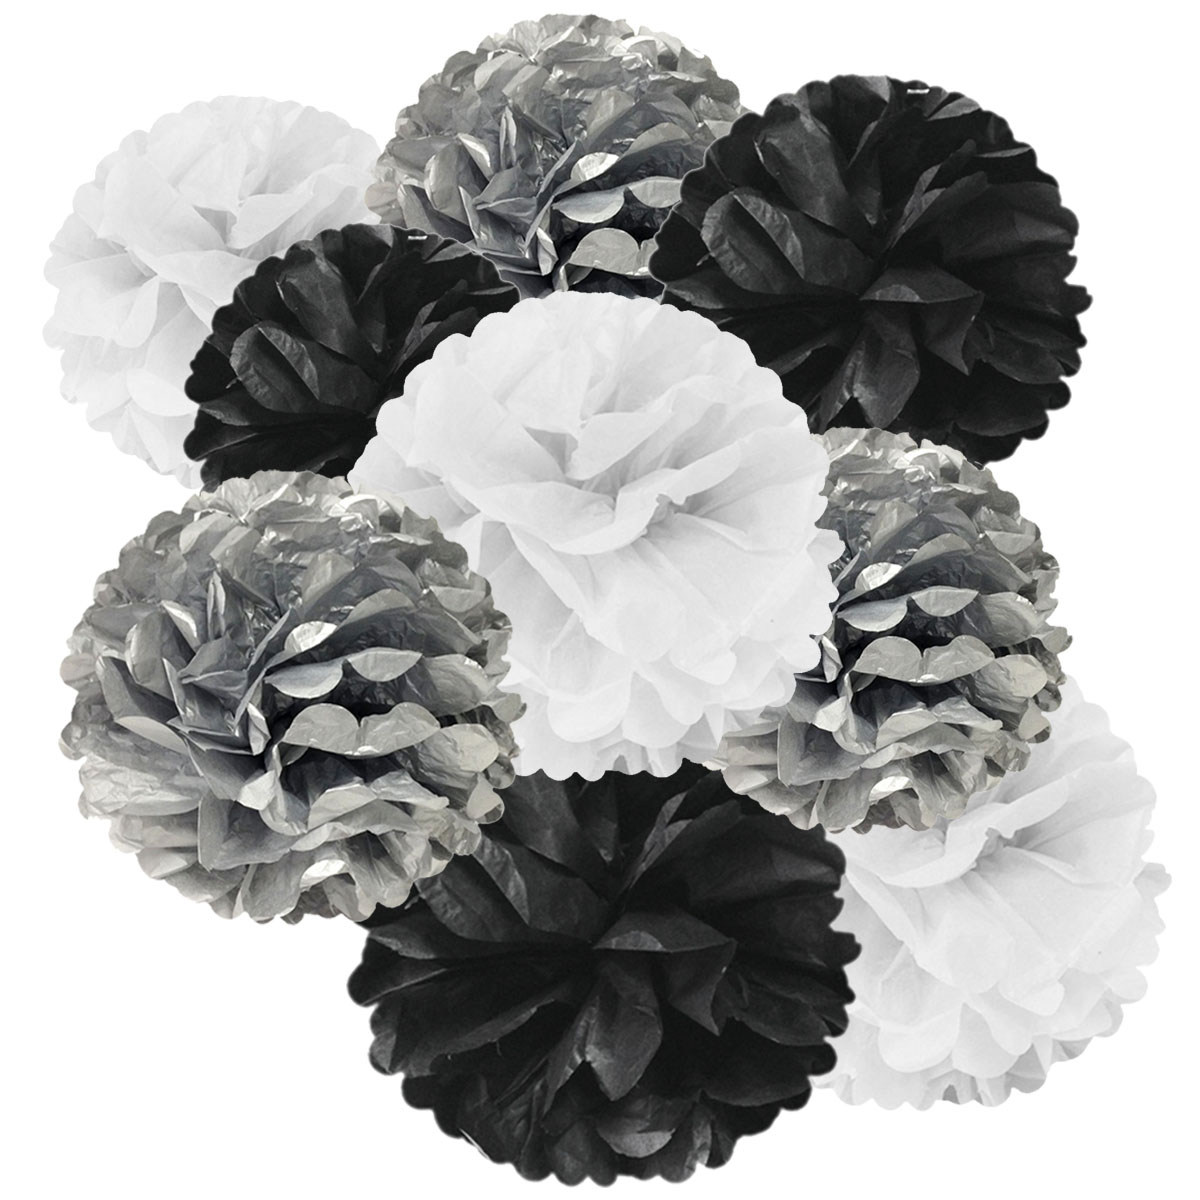 Wrapables® Set of 9 Tissue Pom Pom Party Decorations for Weddings, Birthday Parties Baby Showers and Nursery Decor, Black/Silver/White